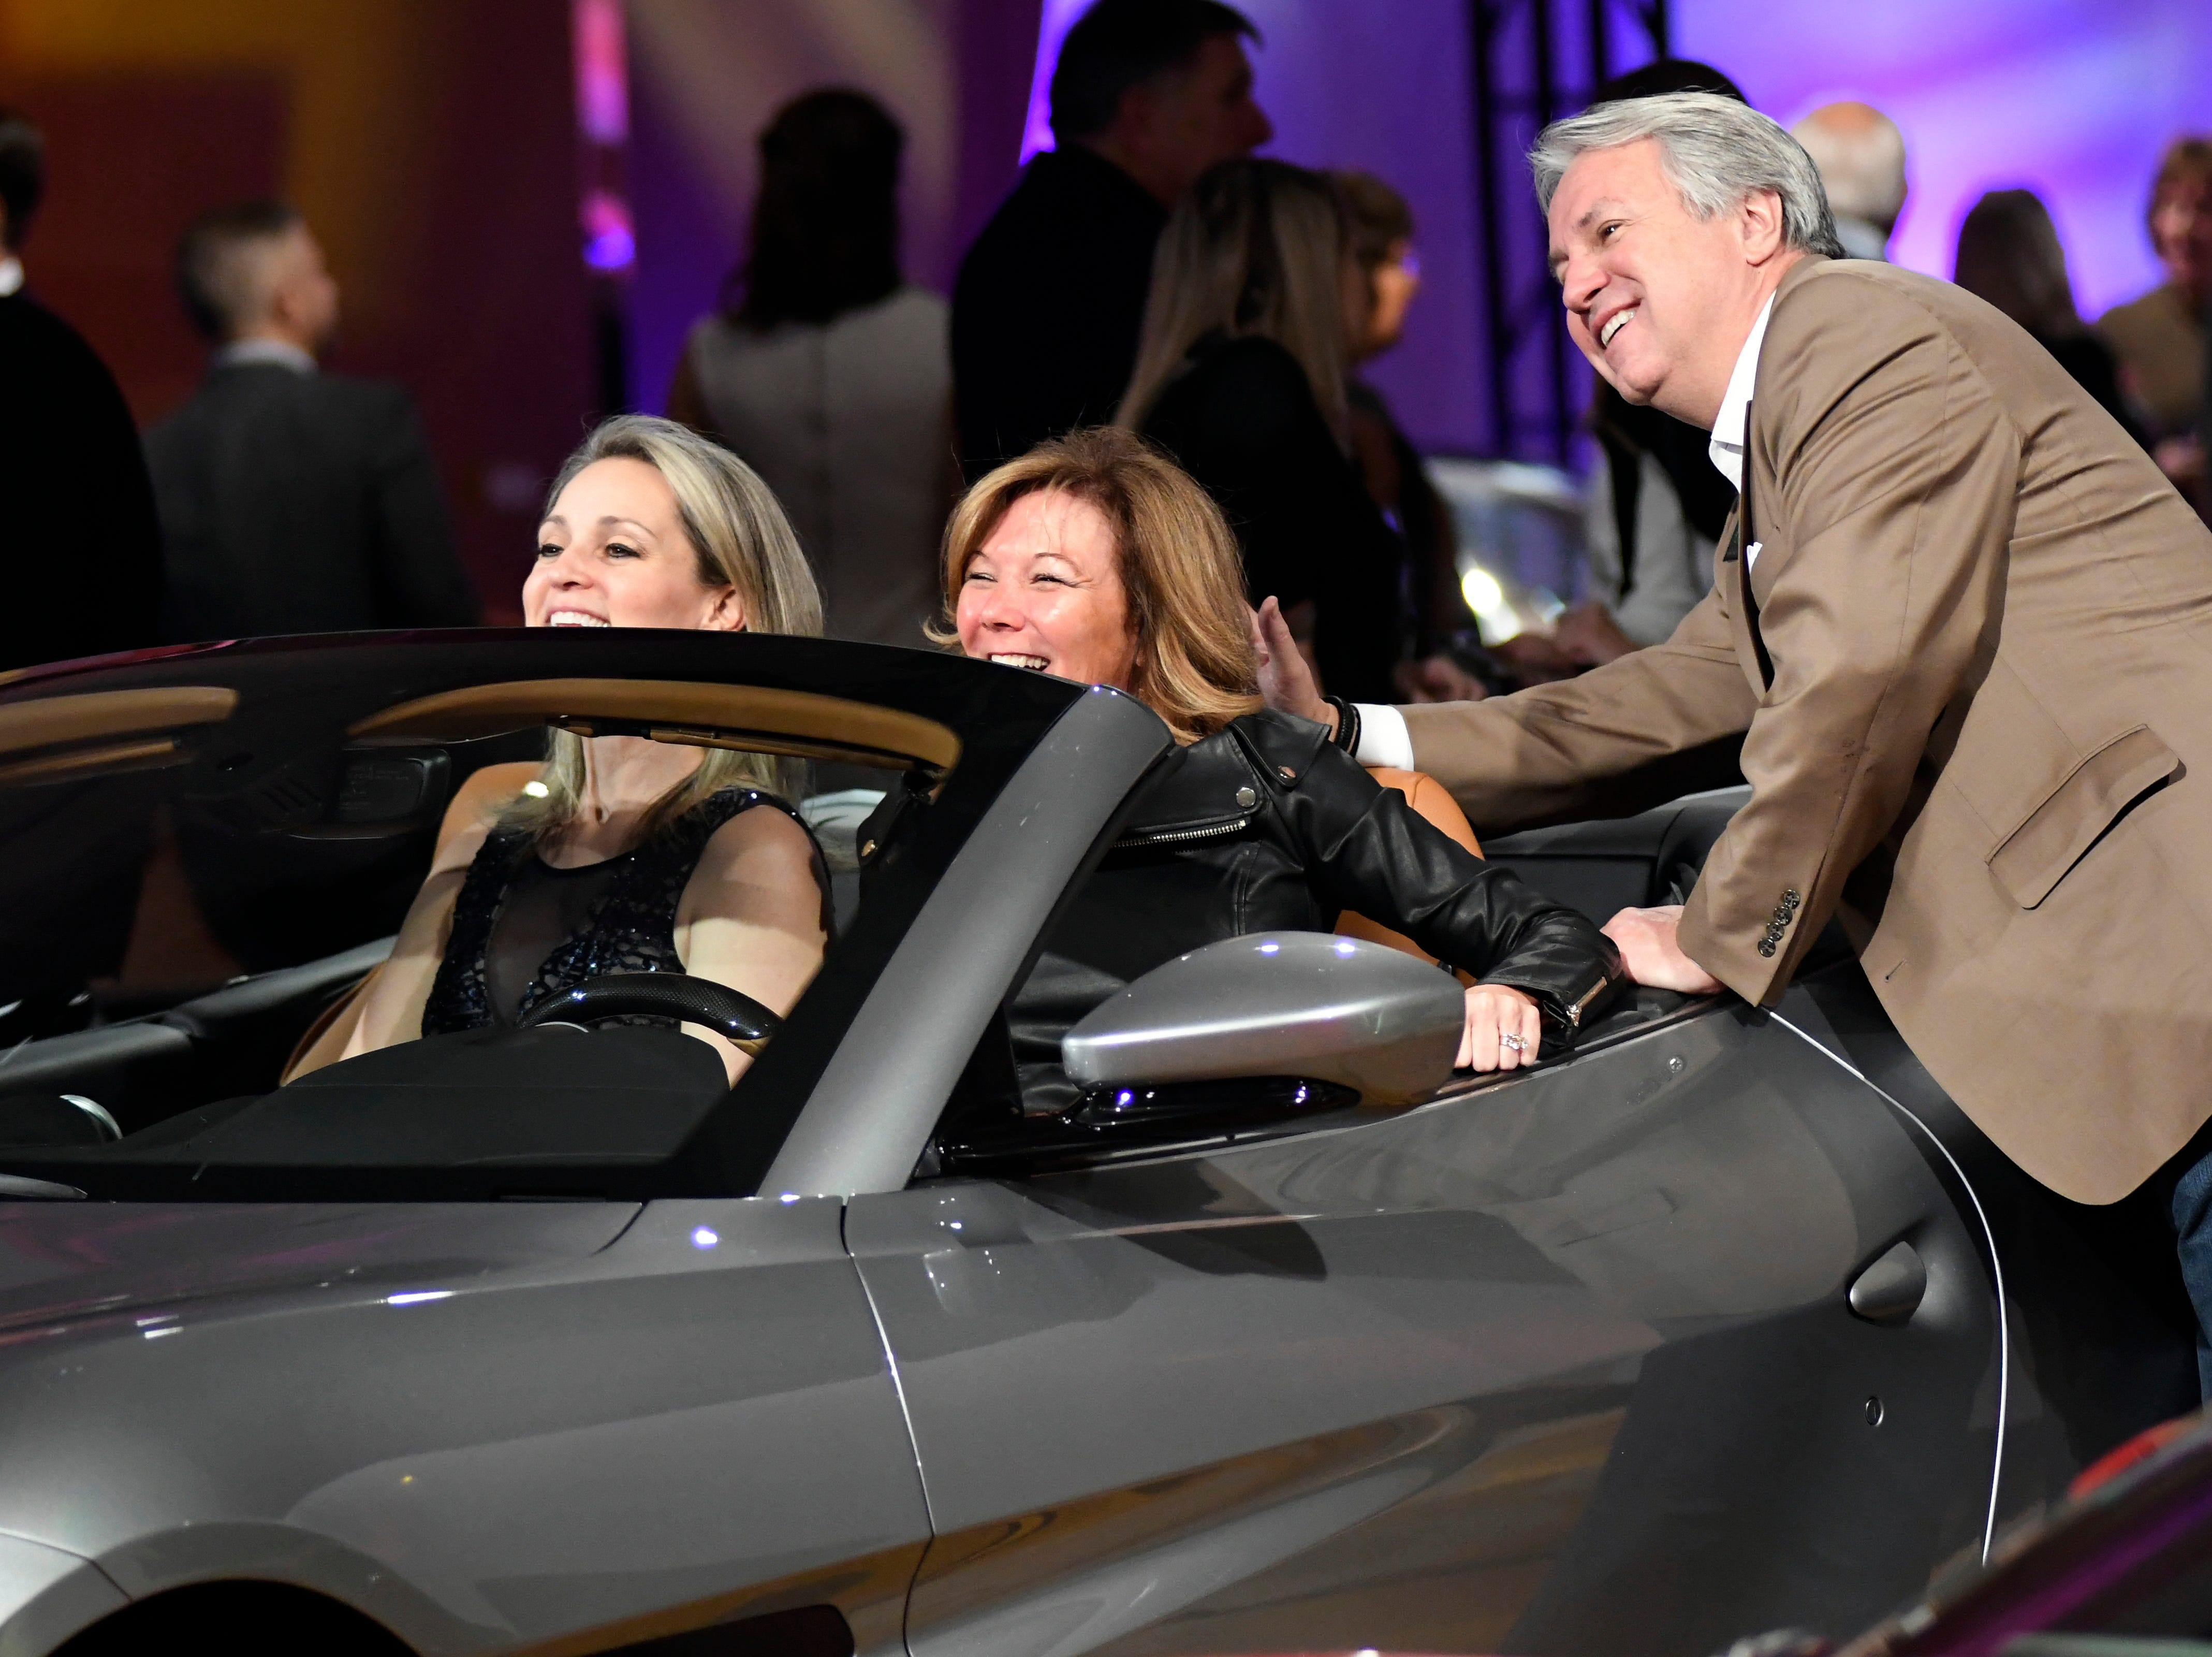 Attendees have fun as they pose for photos inside one of the luxury vehicles at The Gallery.